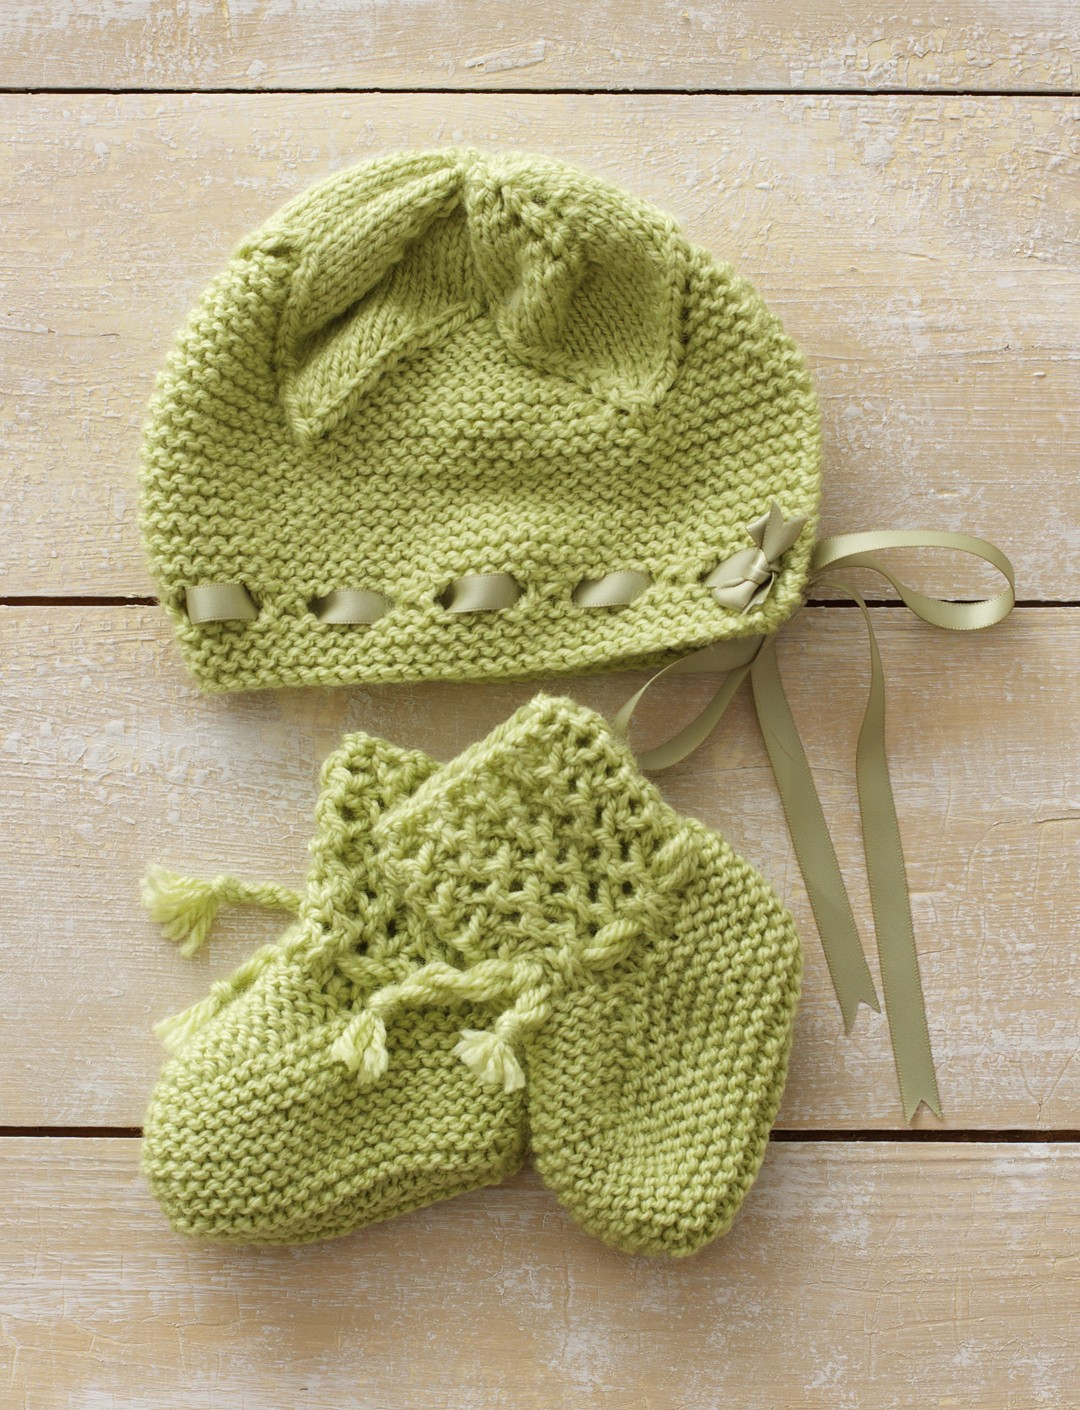 Bernat Leaf and Lace Set, Knit Pattern Yarnspirations